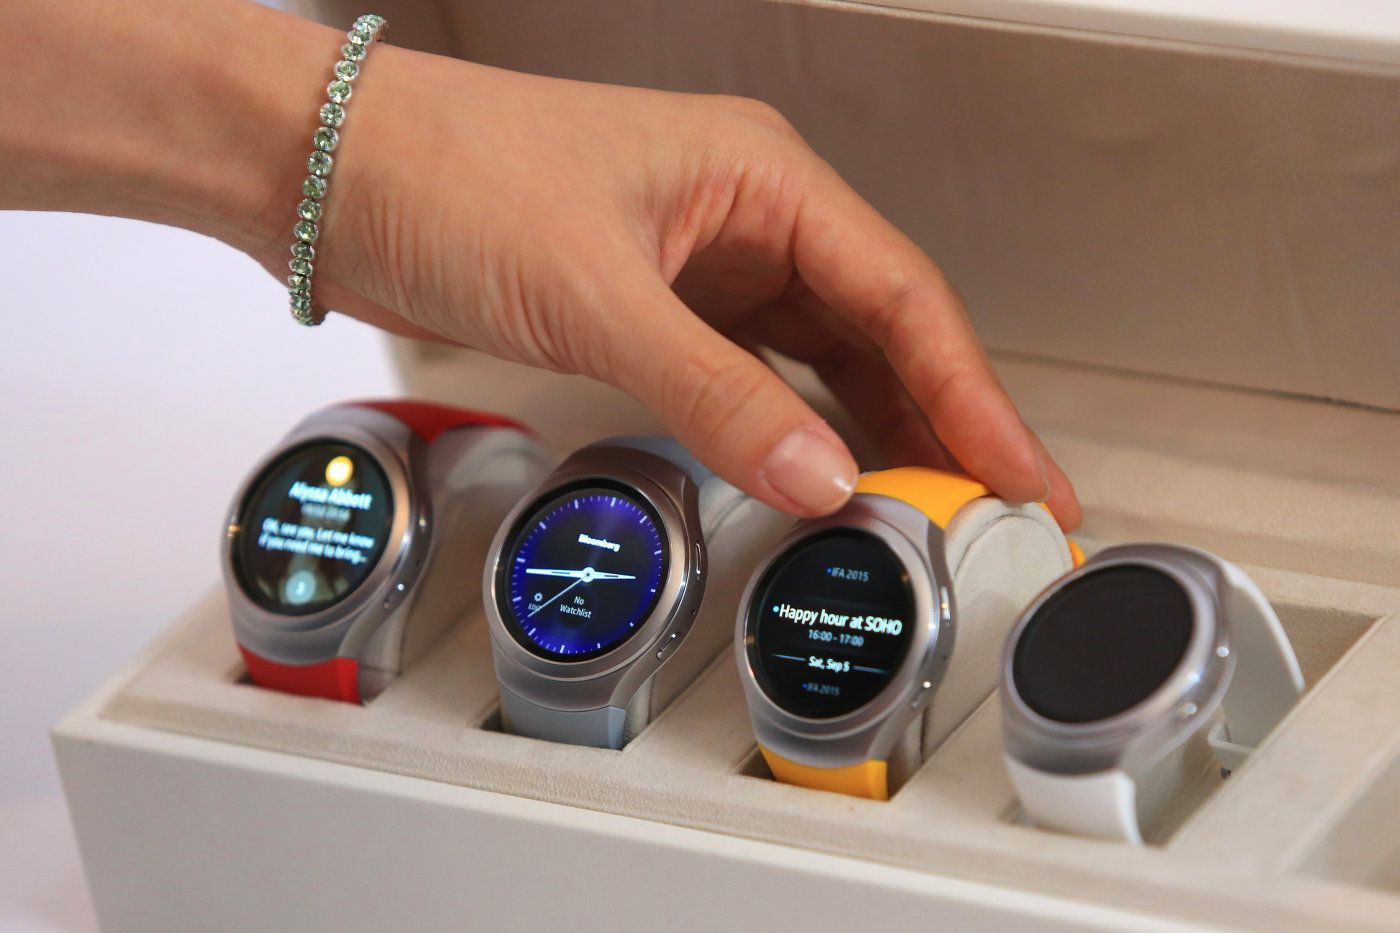 Samsung Pay won't arrive on the Gear S2 until next year